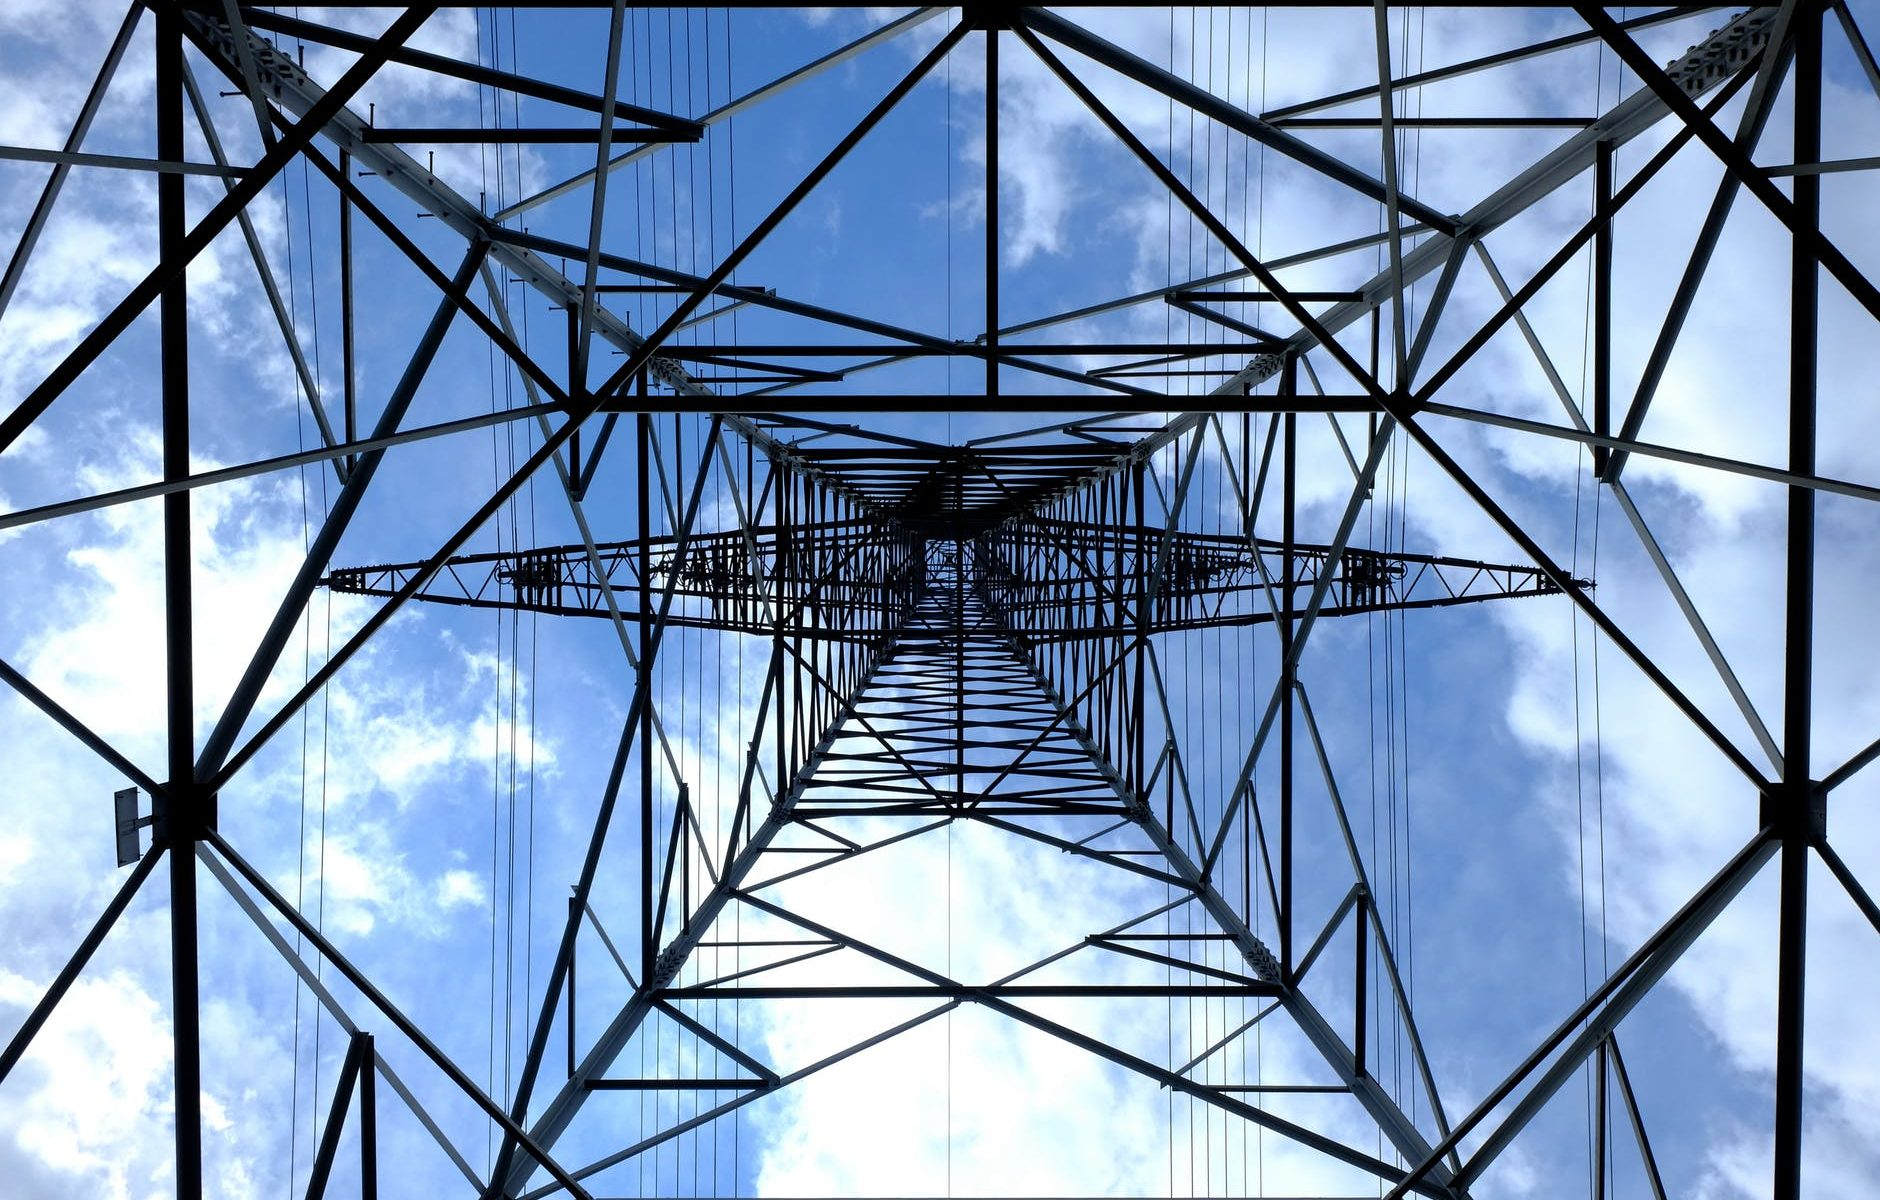 low angle photograph of black metal tower satellite during daytime